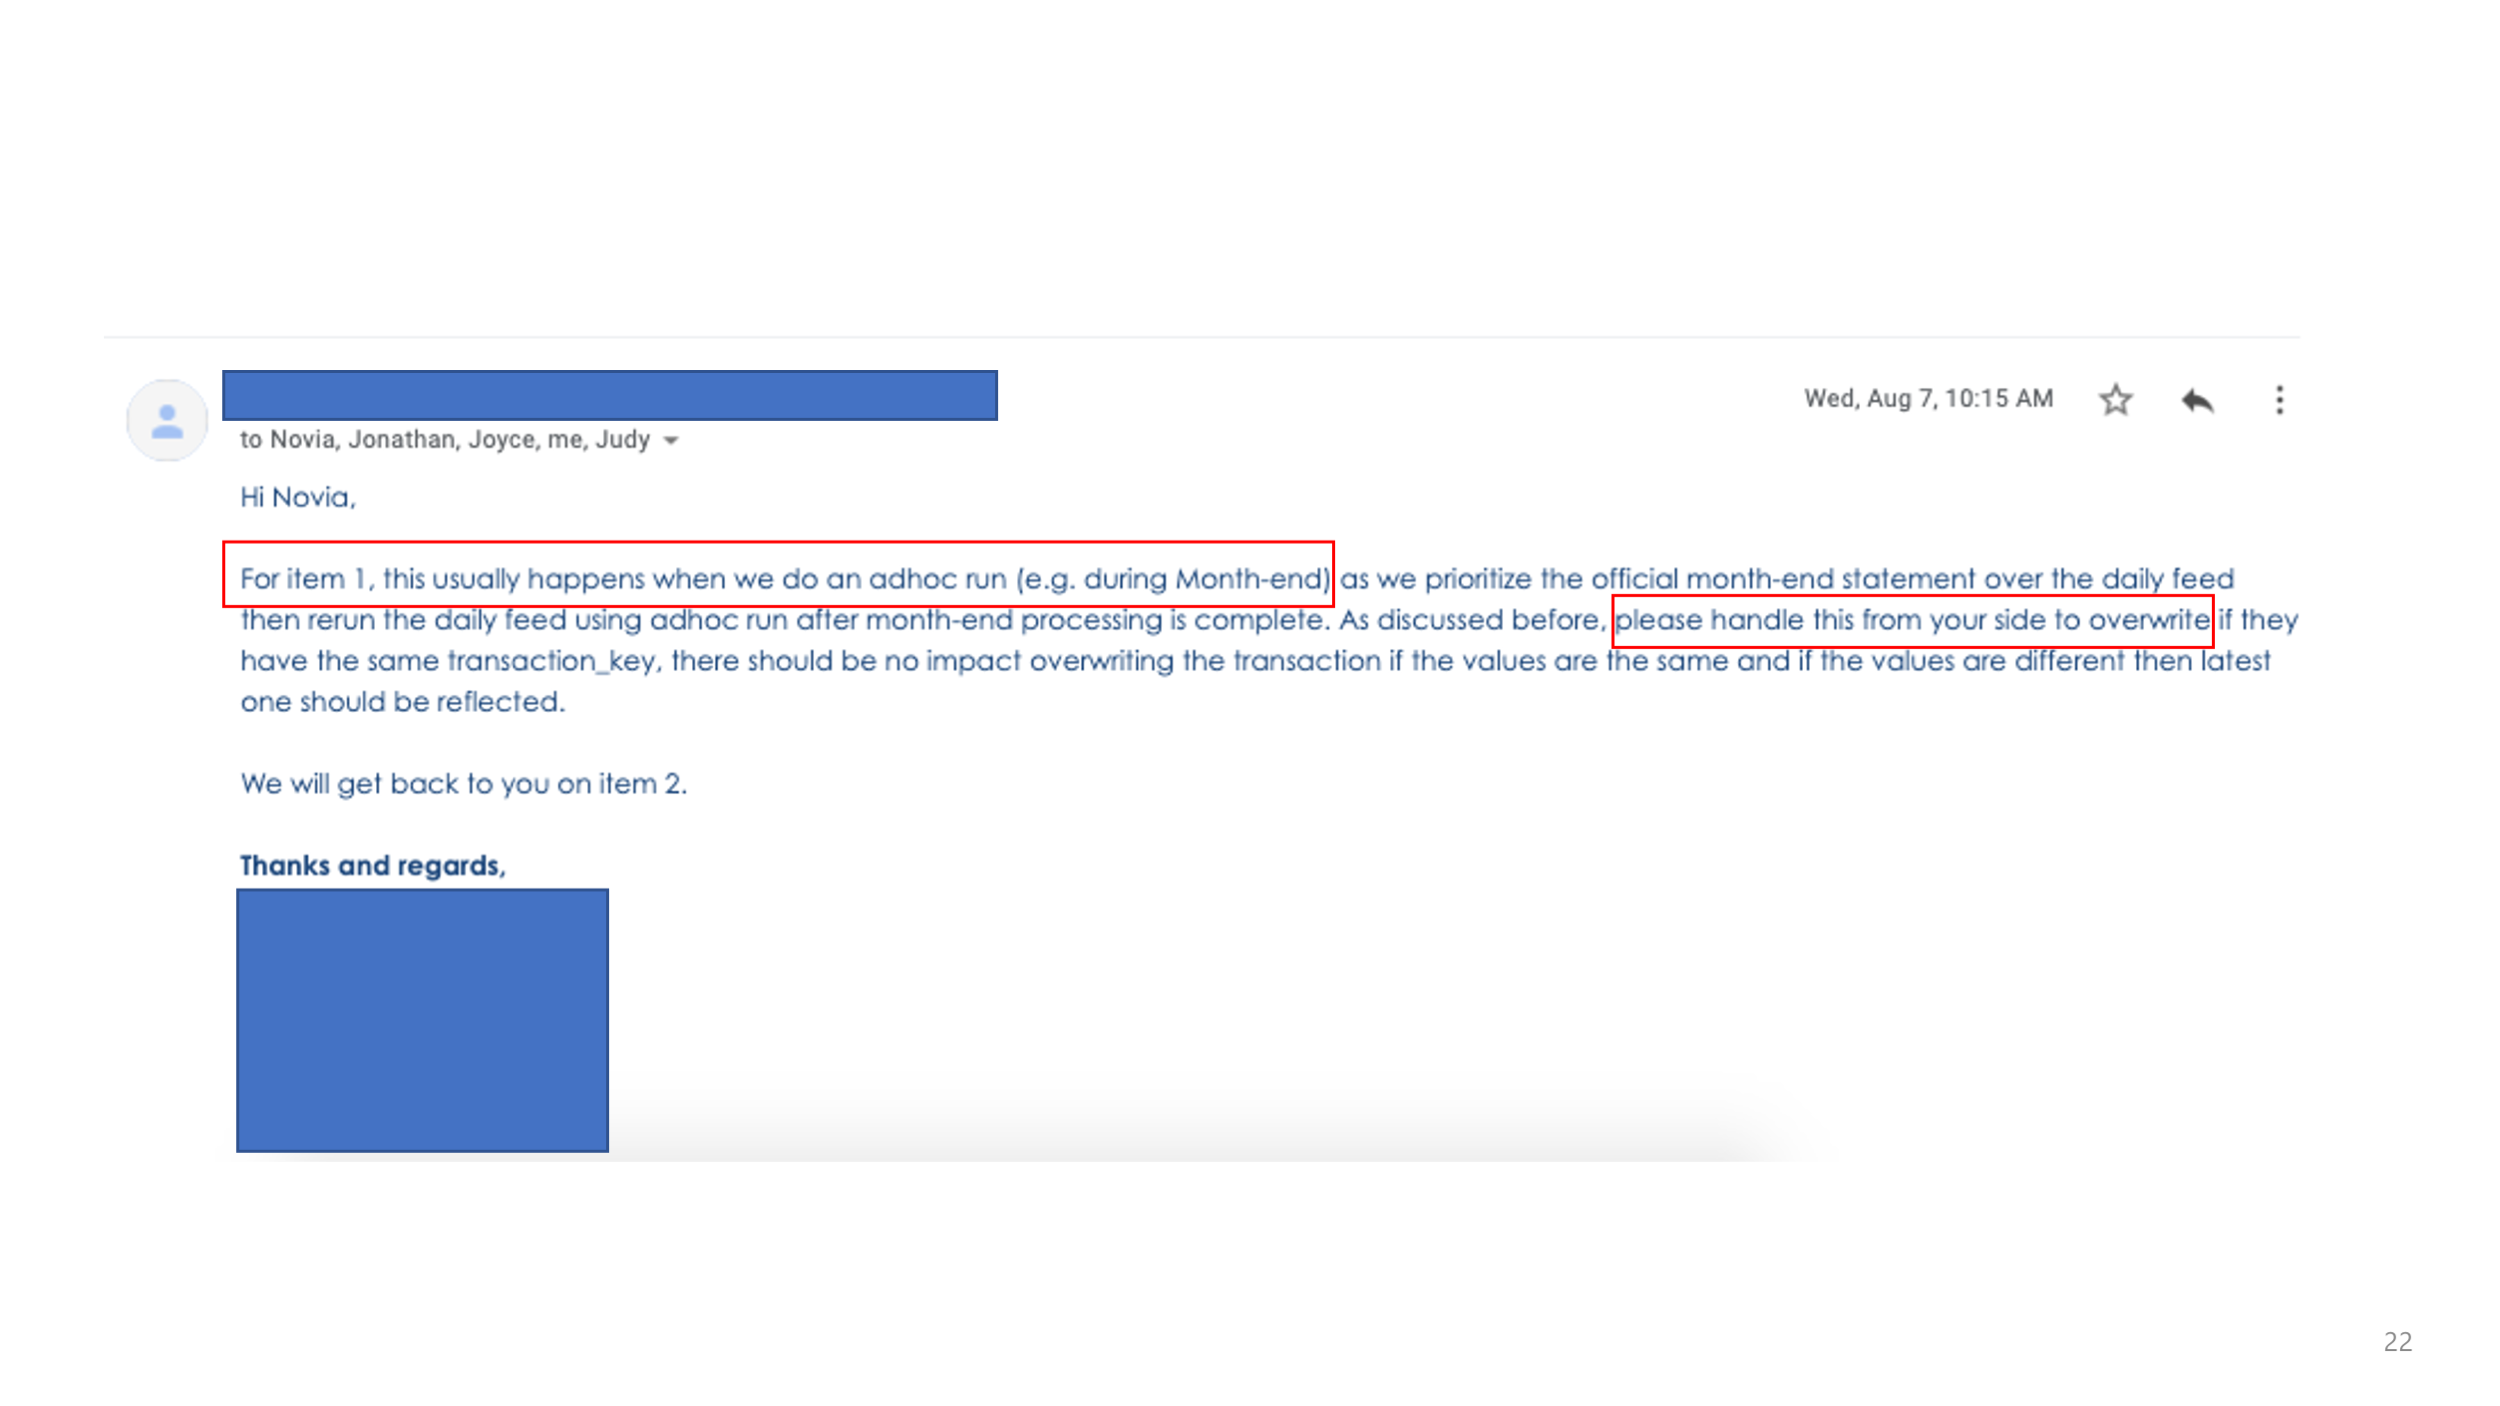 Email confirmation from the bank acknowledging duplicate transactions